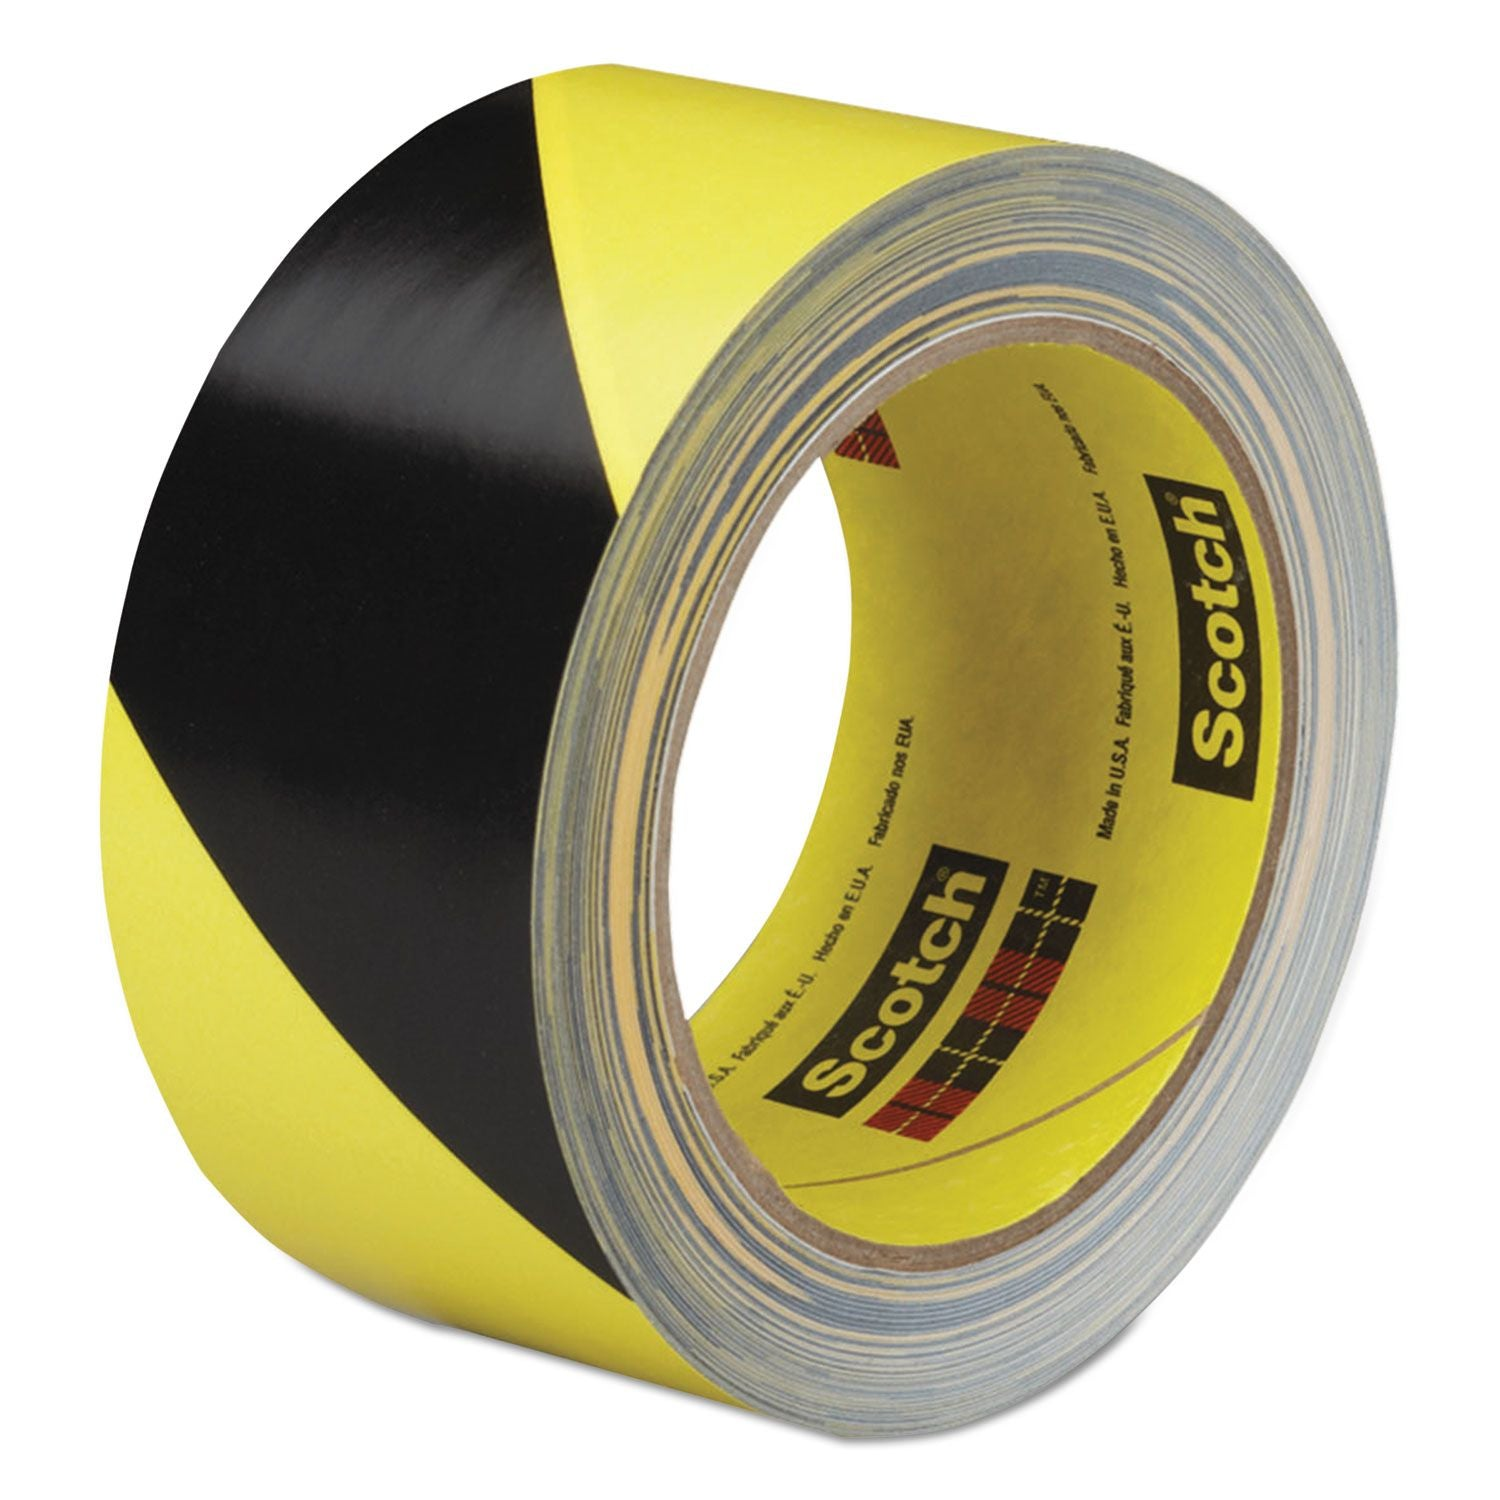 "3M Safety Marking Hazard Tape 5702 Black Yellow Stripe 3"" in x 36 yd Roll 5.4 mil 70-0060-0835-6"